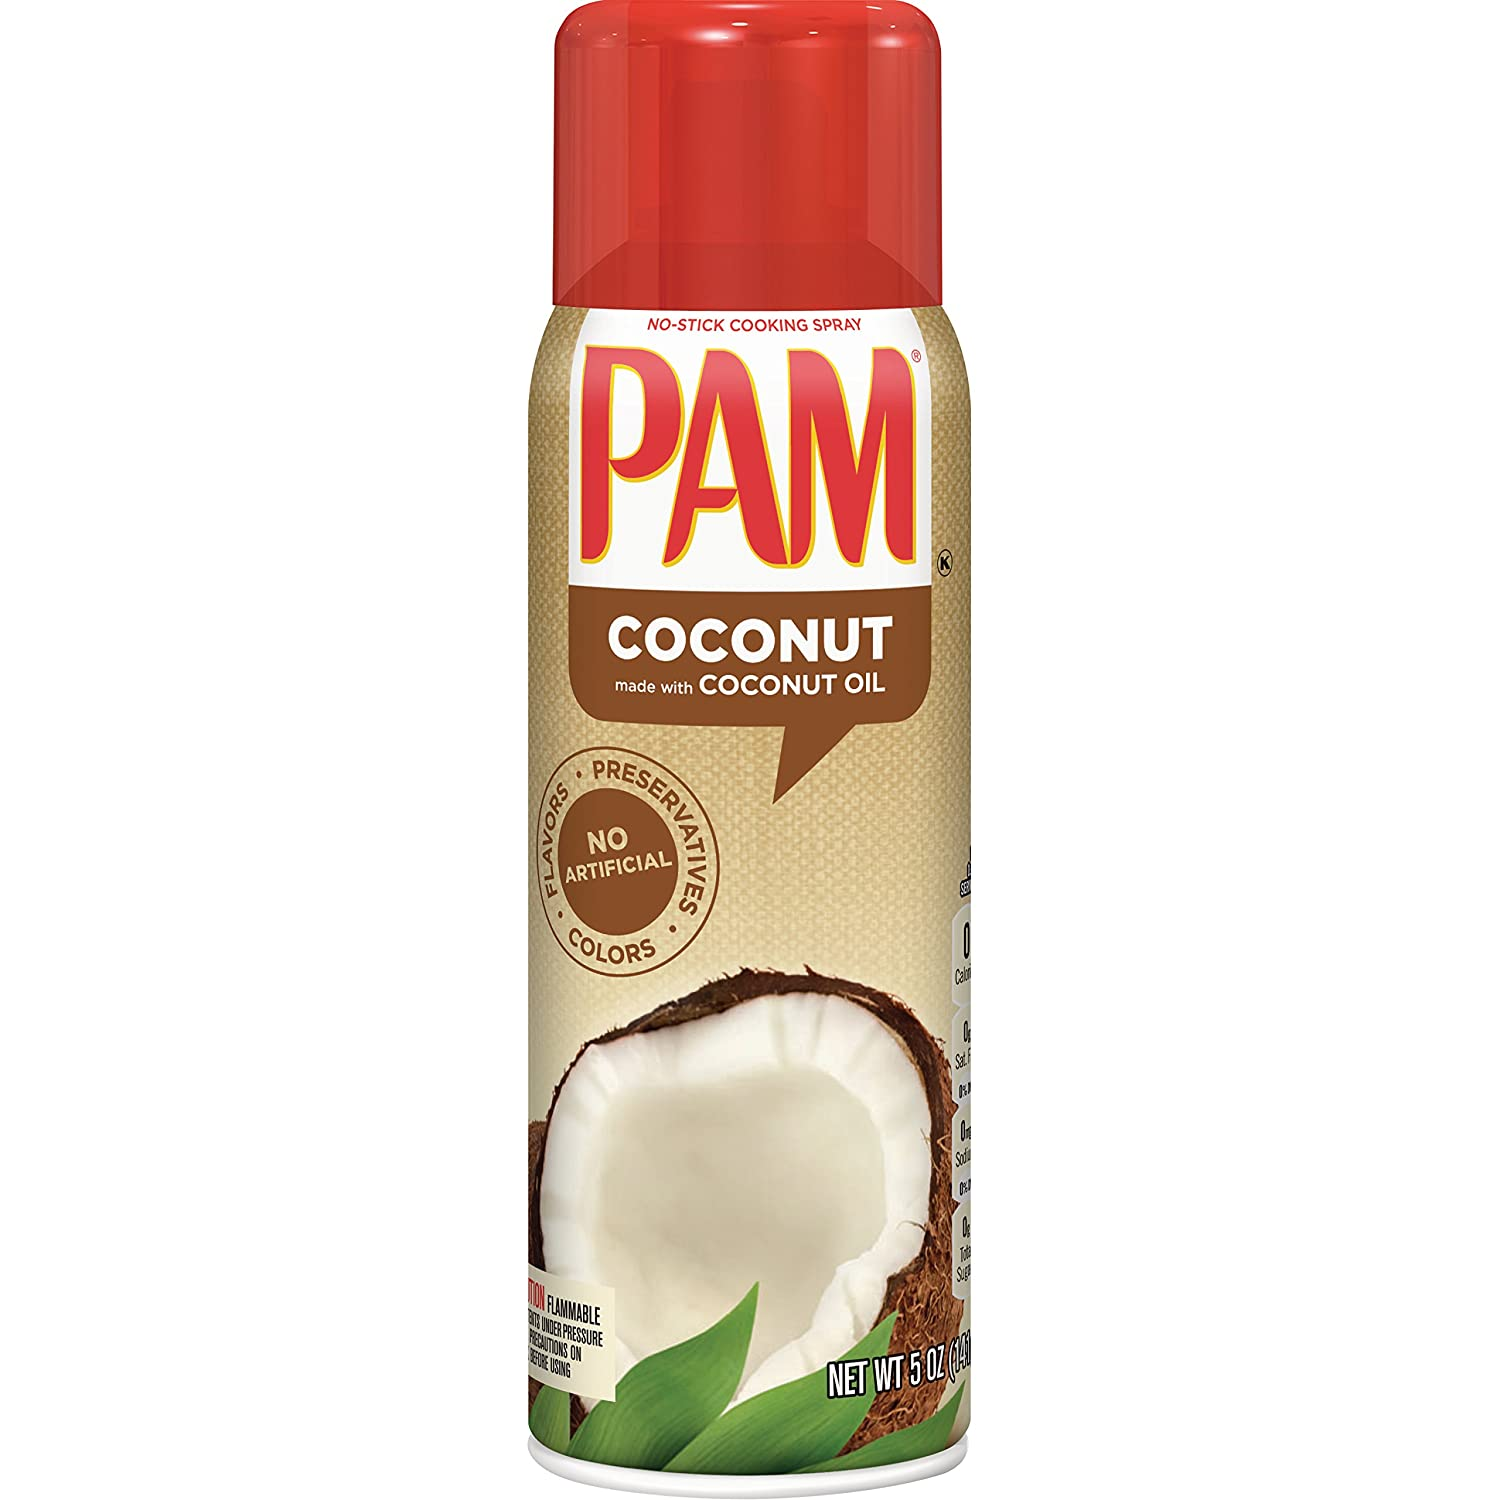 Amazon.com : PAM Coconut Oil Cooking Spray, 5 oz : Grocery & Gourmet ...